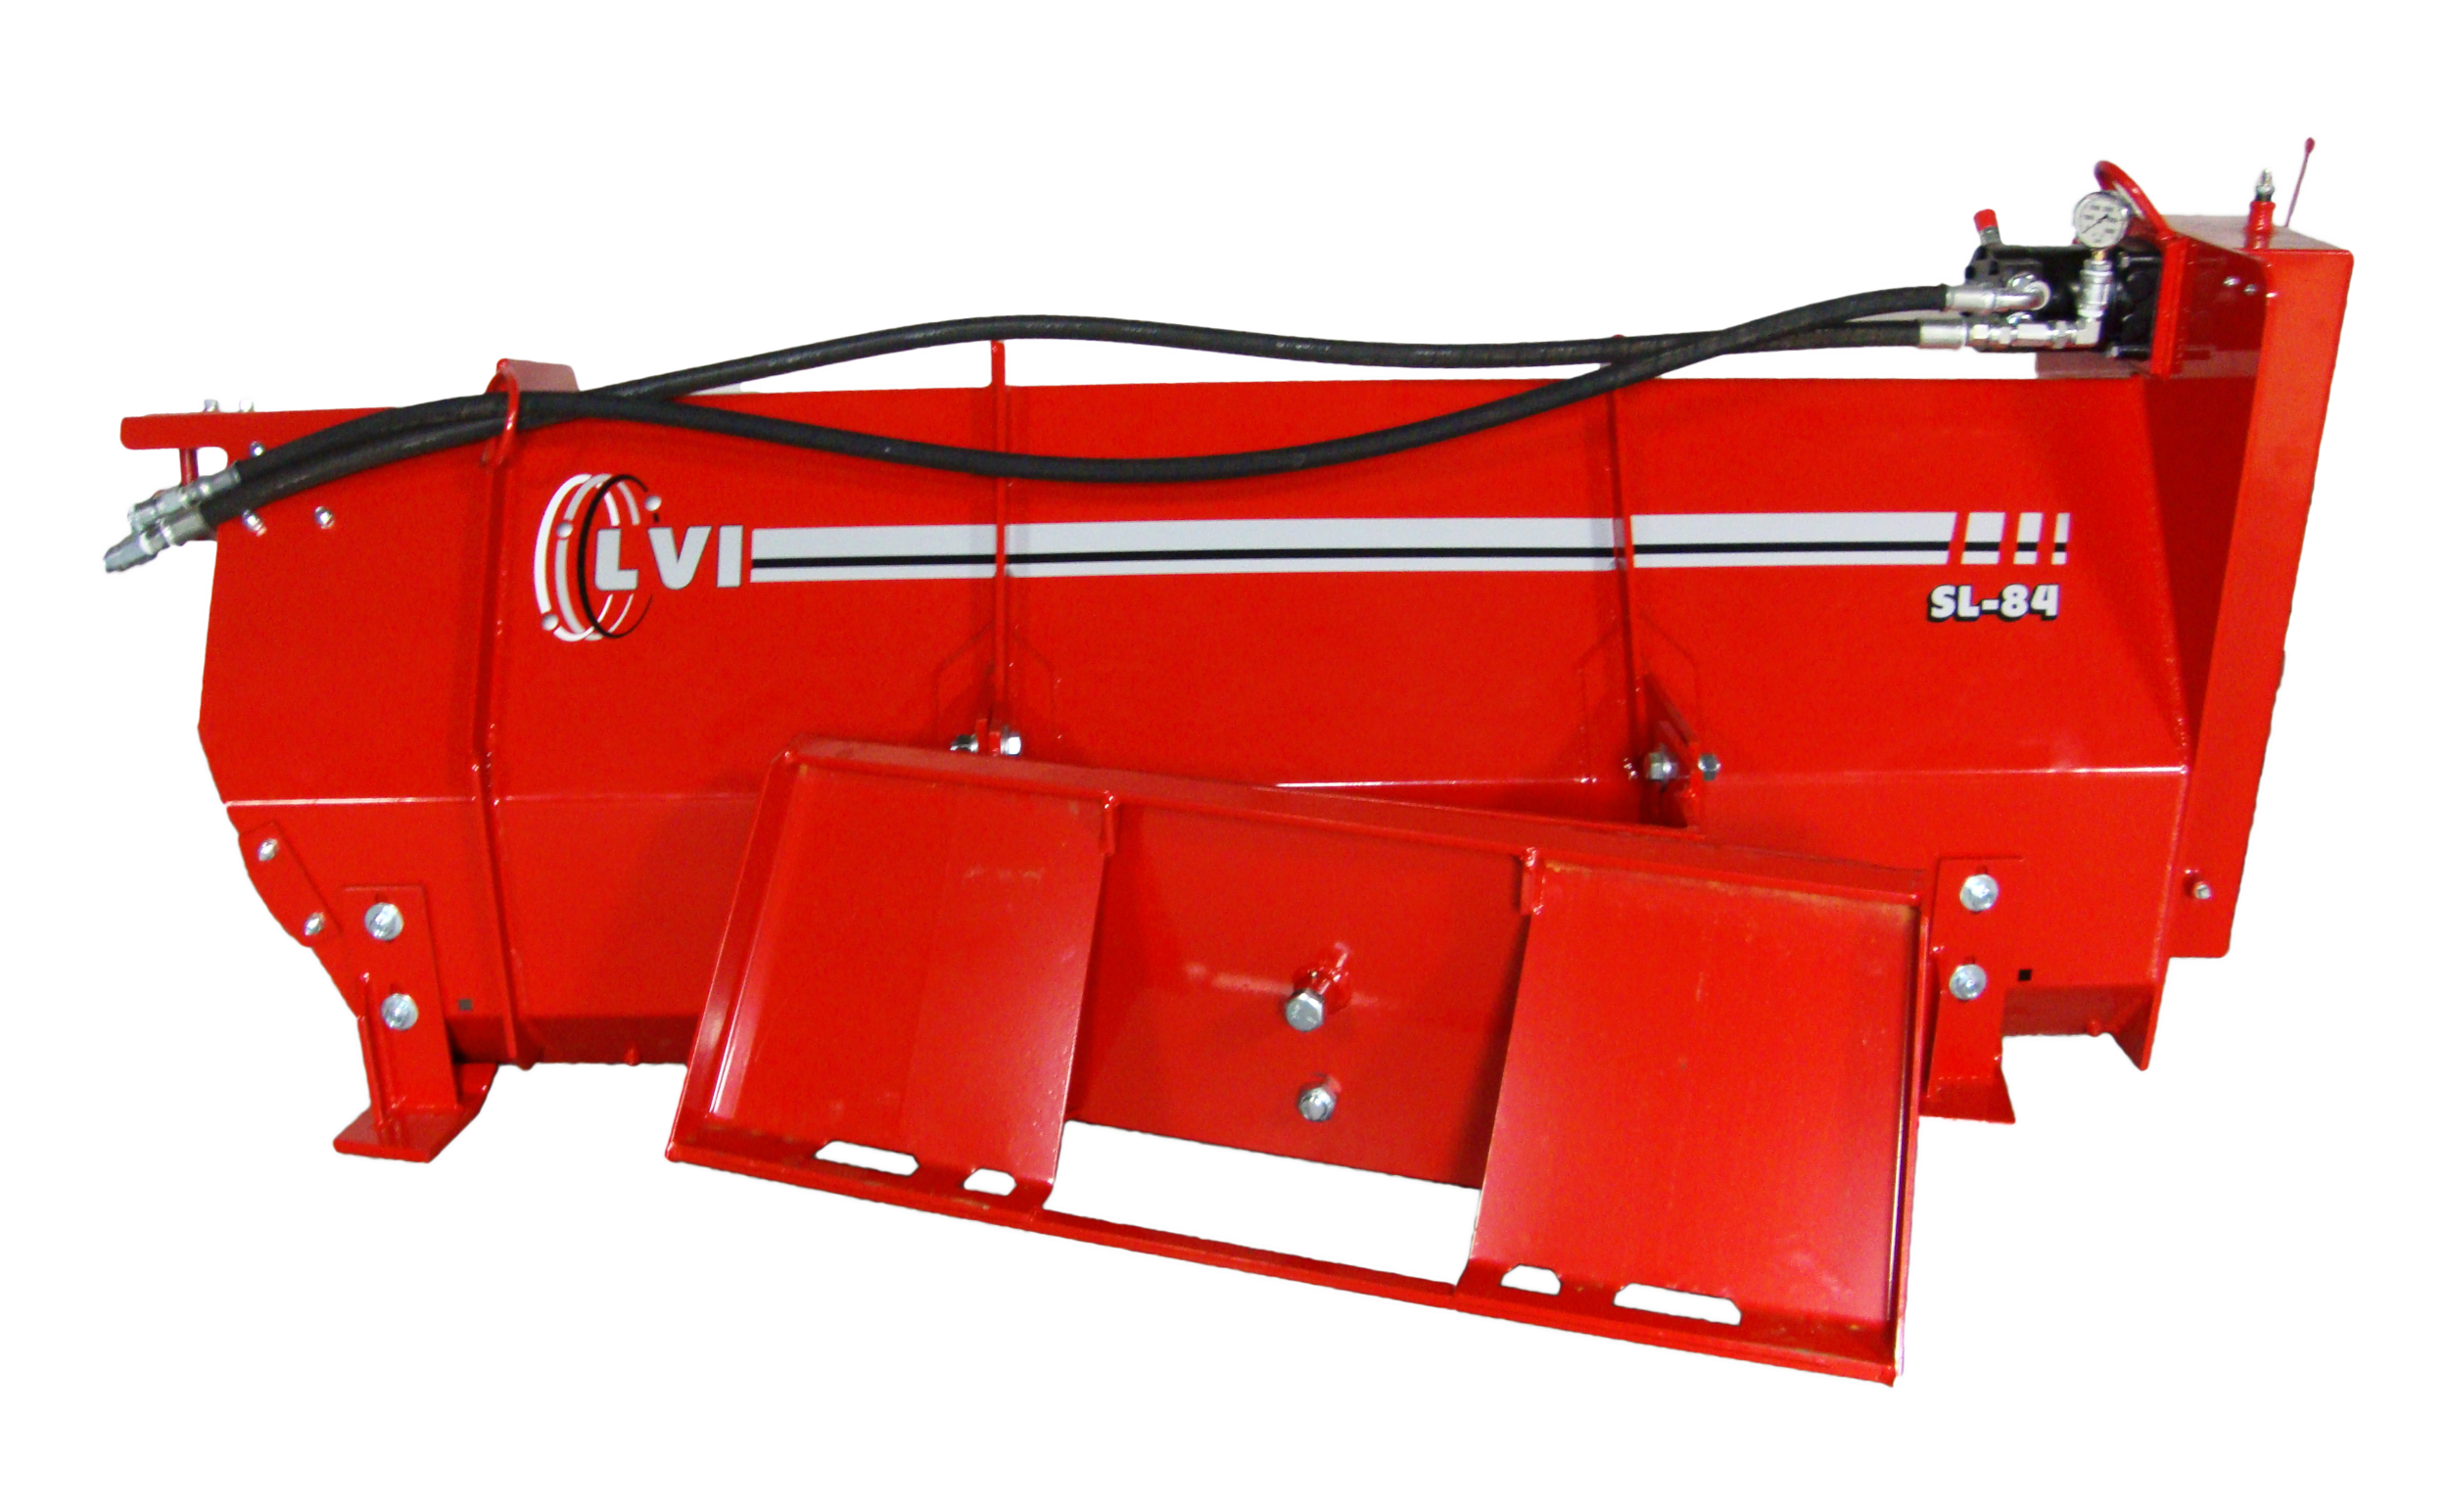 SL-84 Poultry Litter Windrower Machine Back